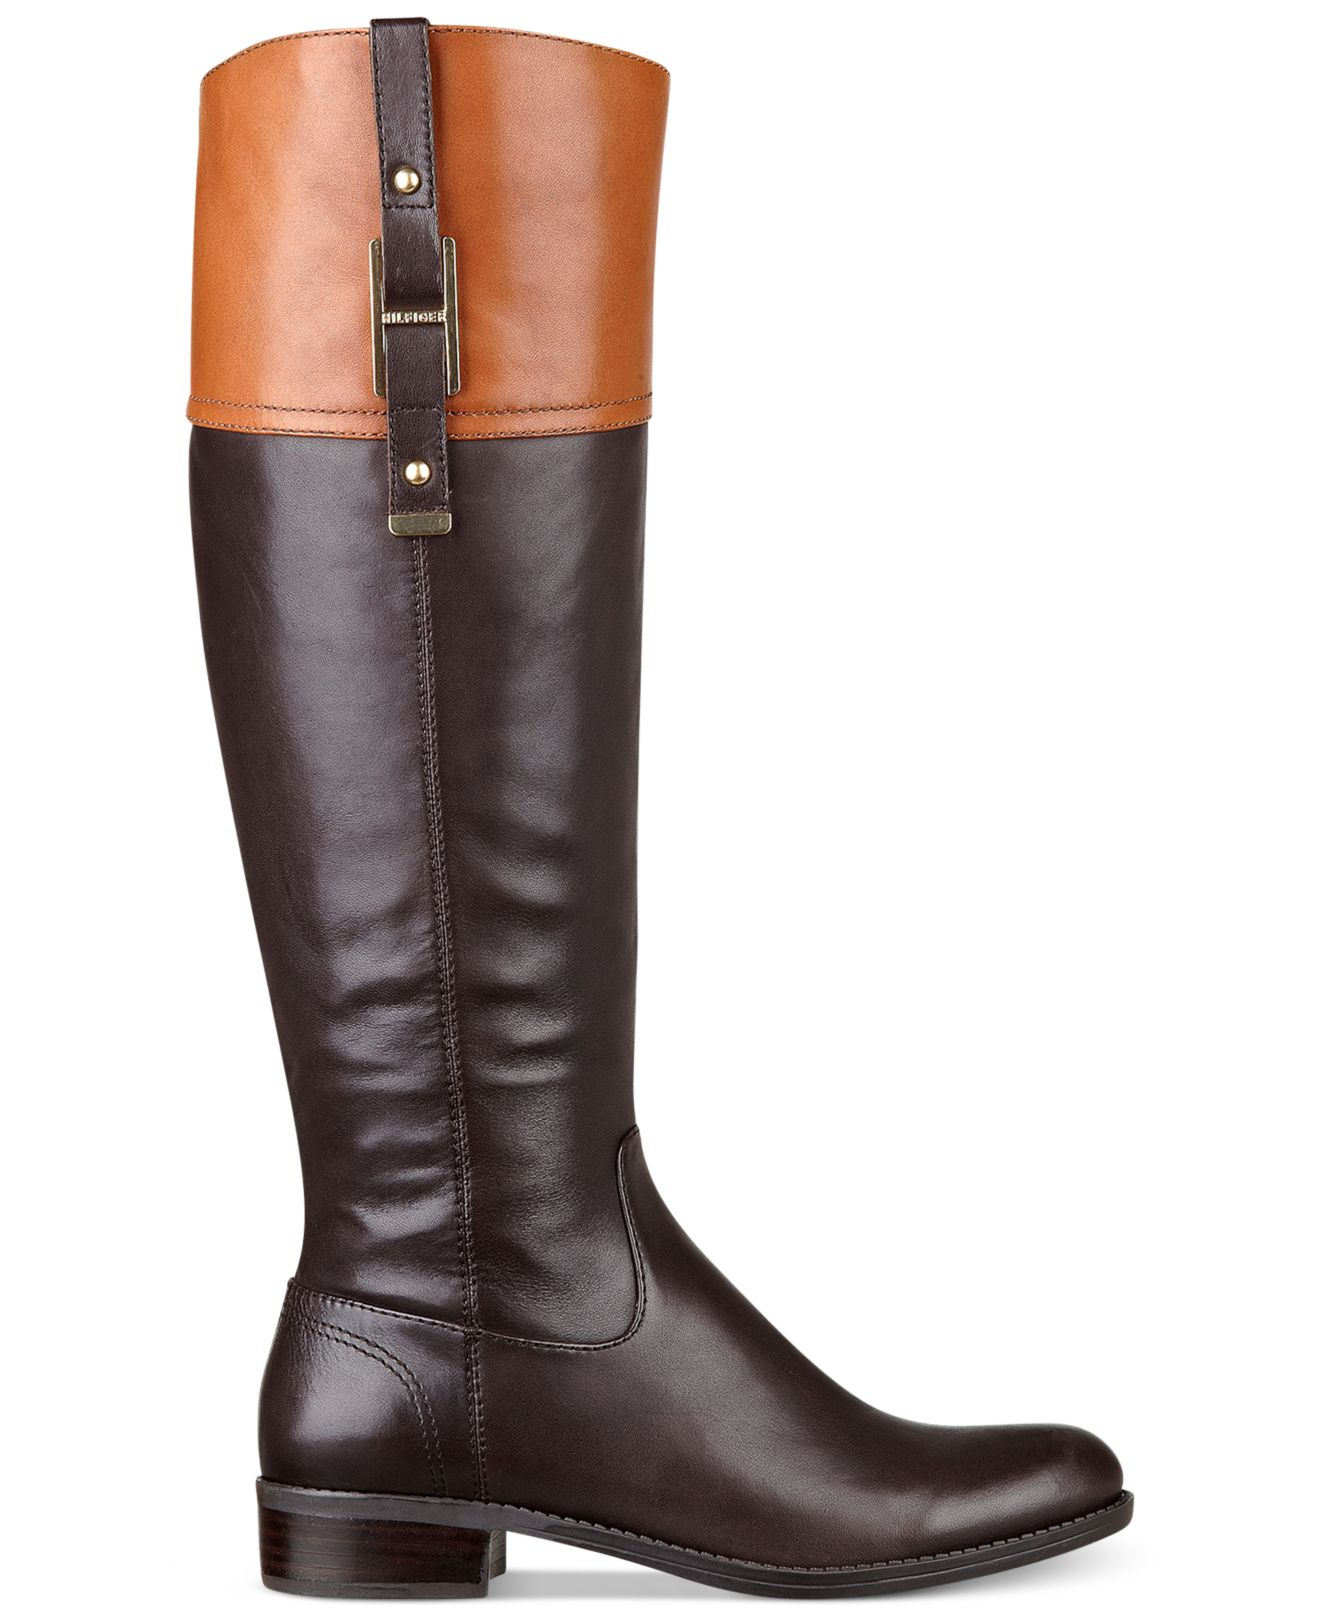 da3490fd9 Lyst - Tommy Hilfiger Women S Gibsy Wide Calf Riding Boots in Brown